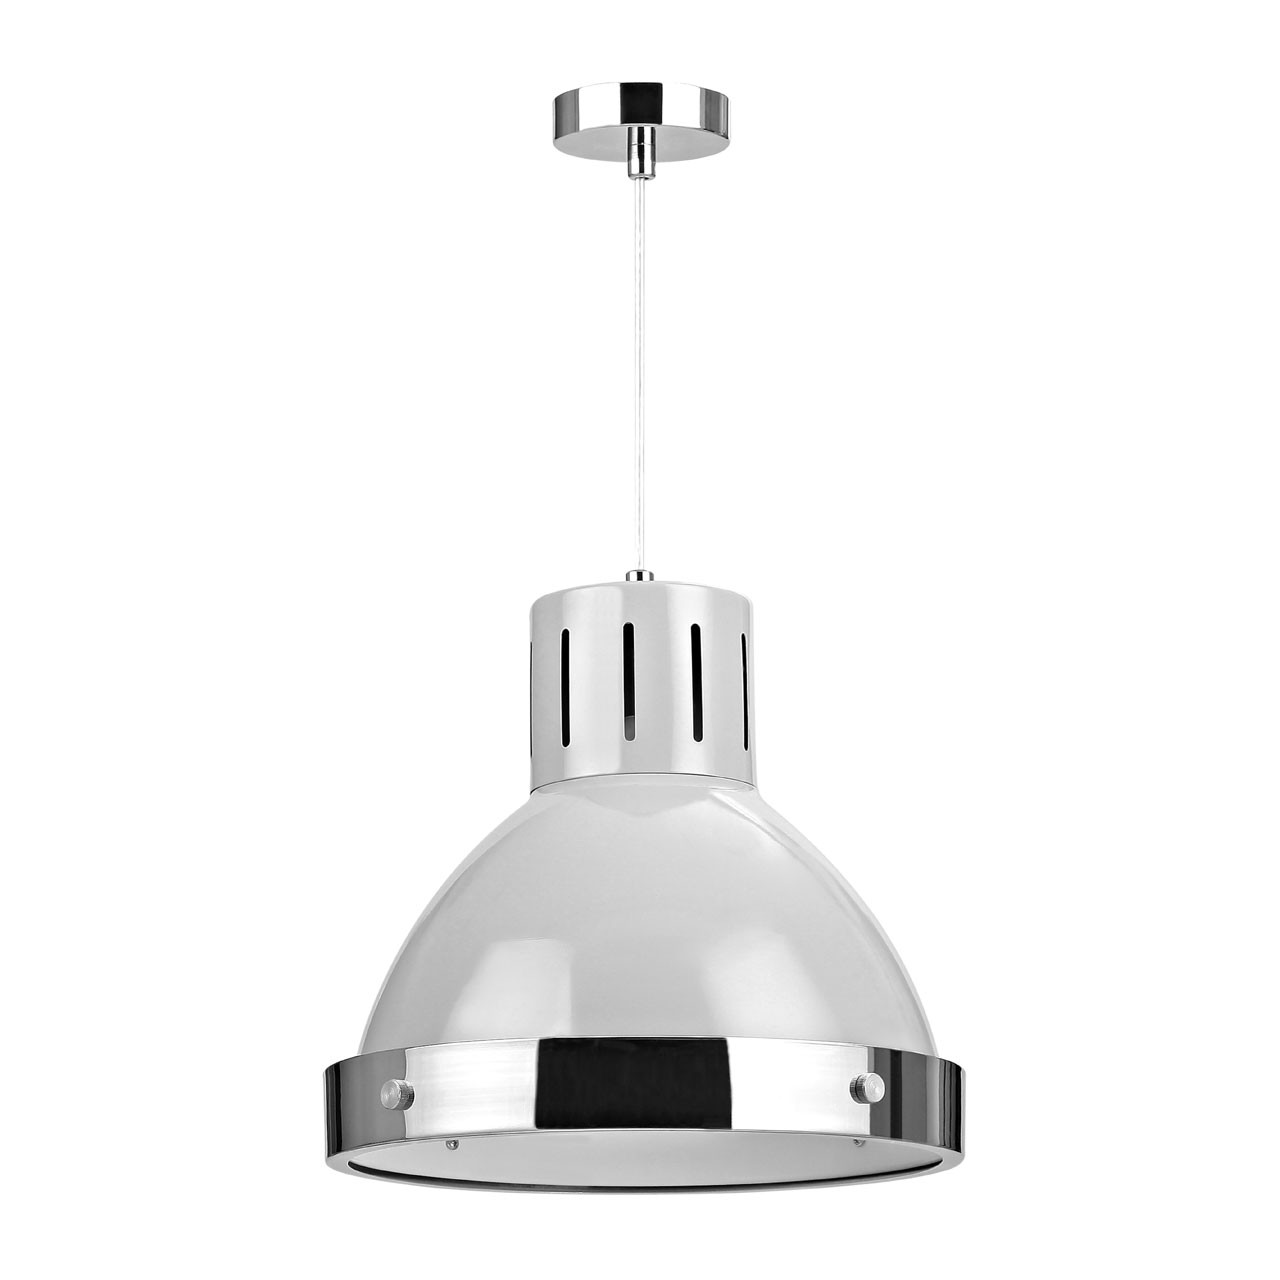 Prime Furnishing Vermont Pendant Light - Flint Grey